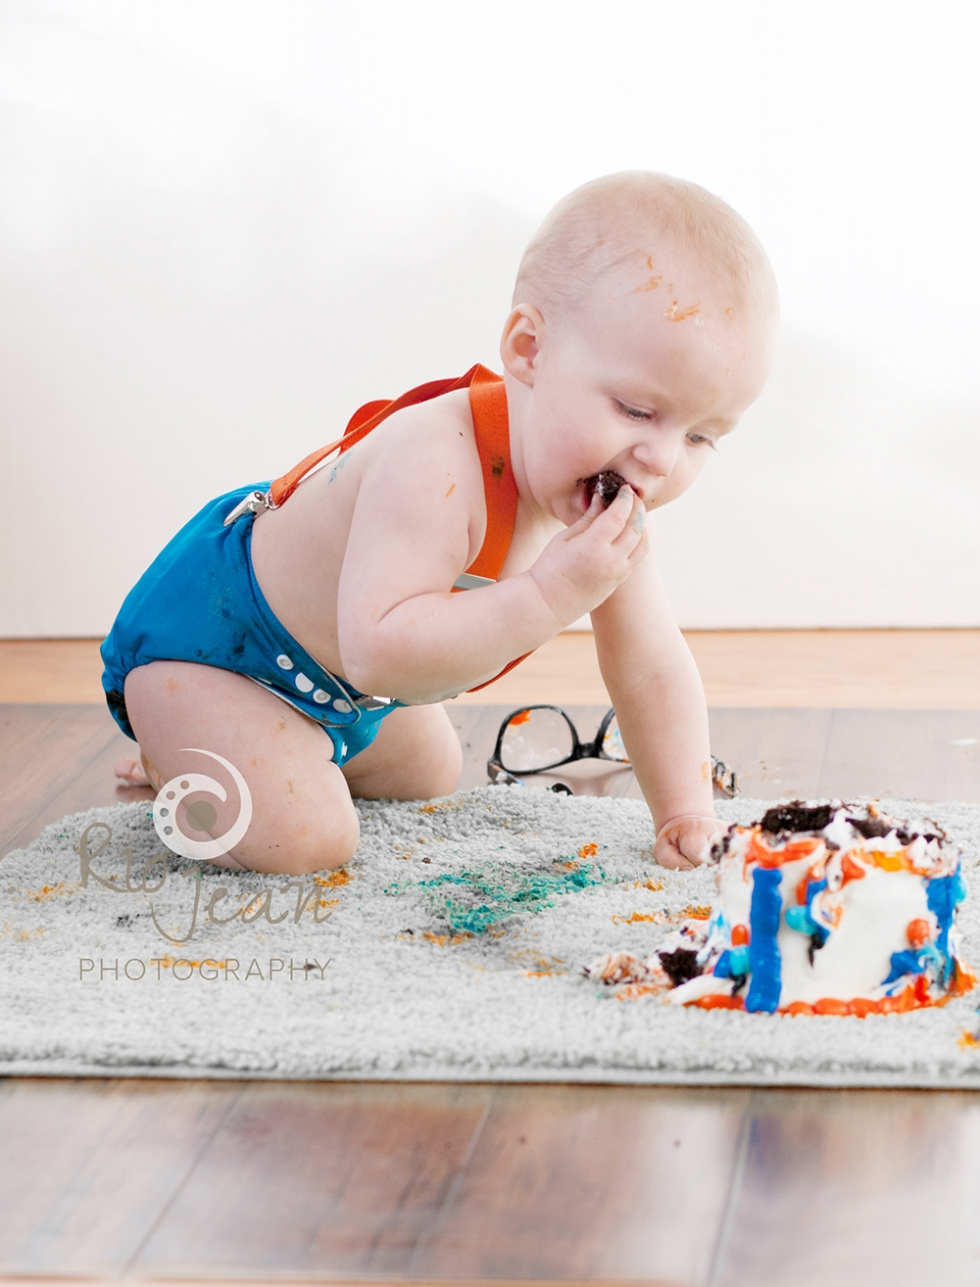 Rio Jean Photography Kent, WA Natural Light Photographer Studio Session First Birthday Cake Smash